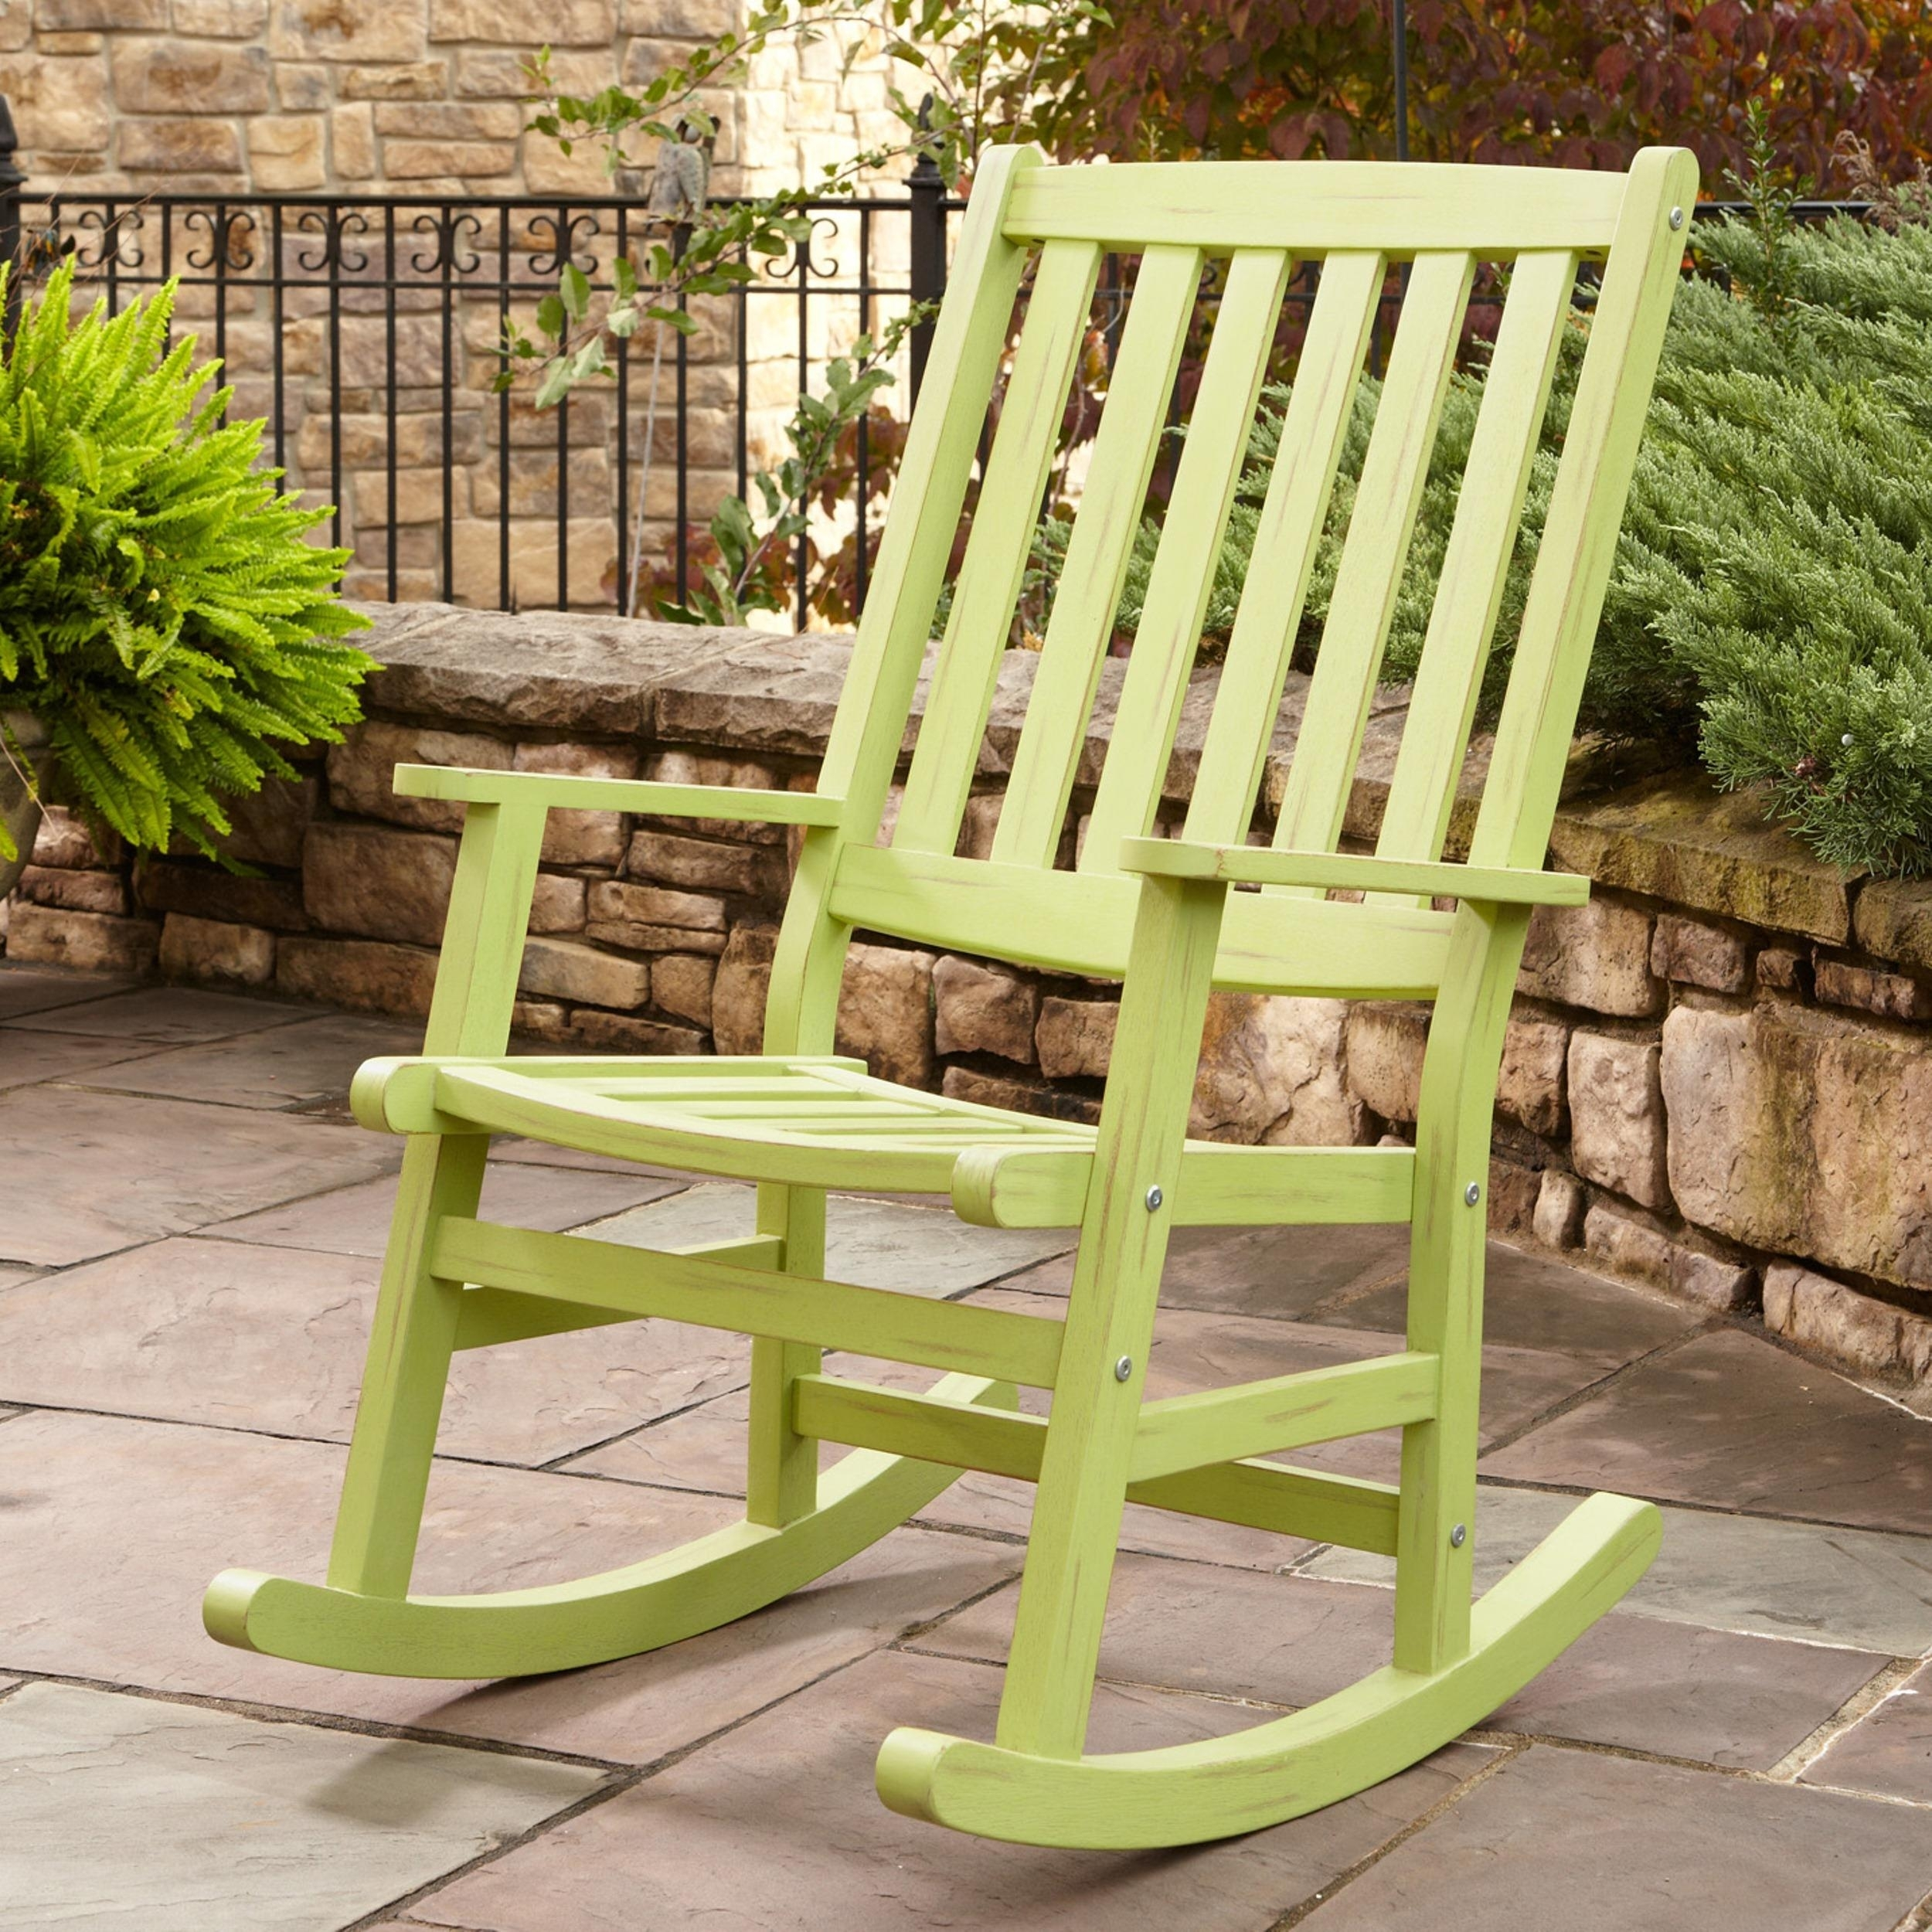 Patio Porch Rocking Chair — Wilson Home Ideas : Vintage Porch Intended For Vintage Metal Rocking Patio Chairs (View 14 of 15)